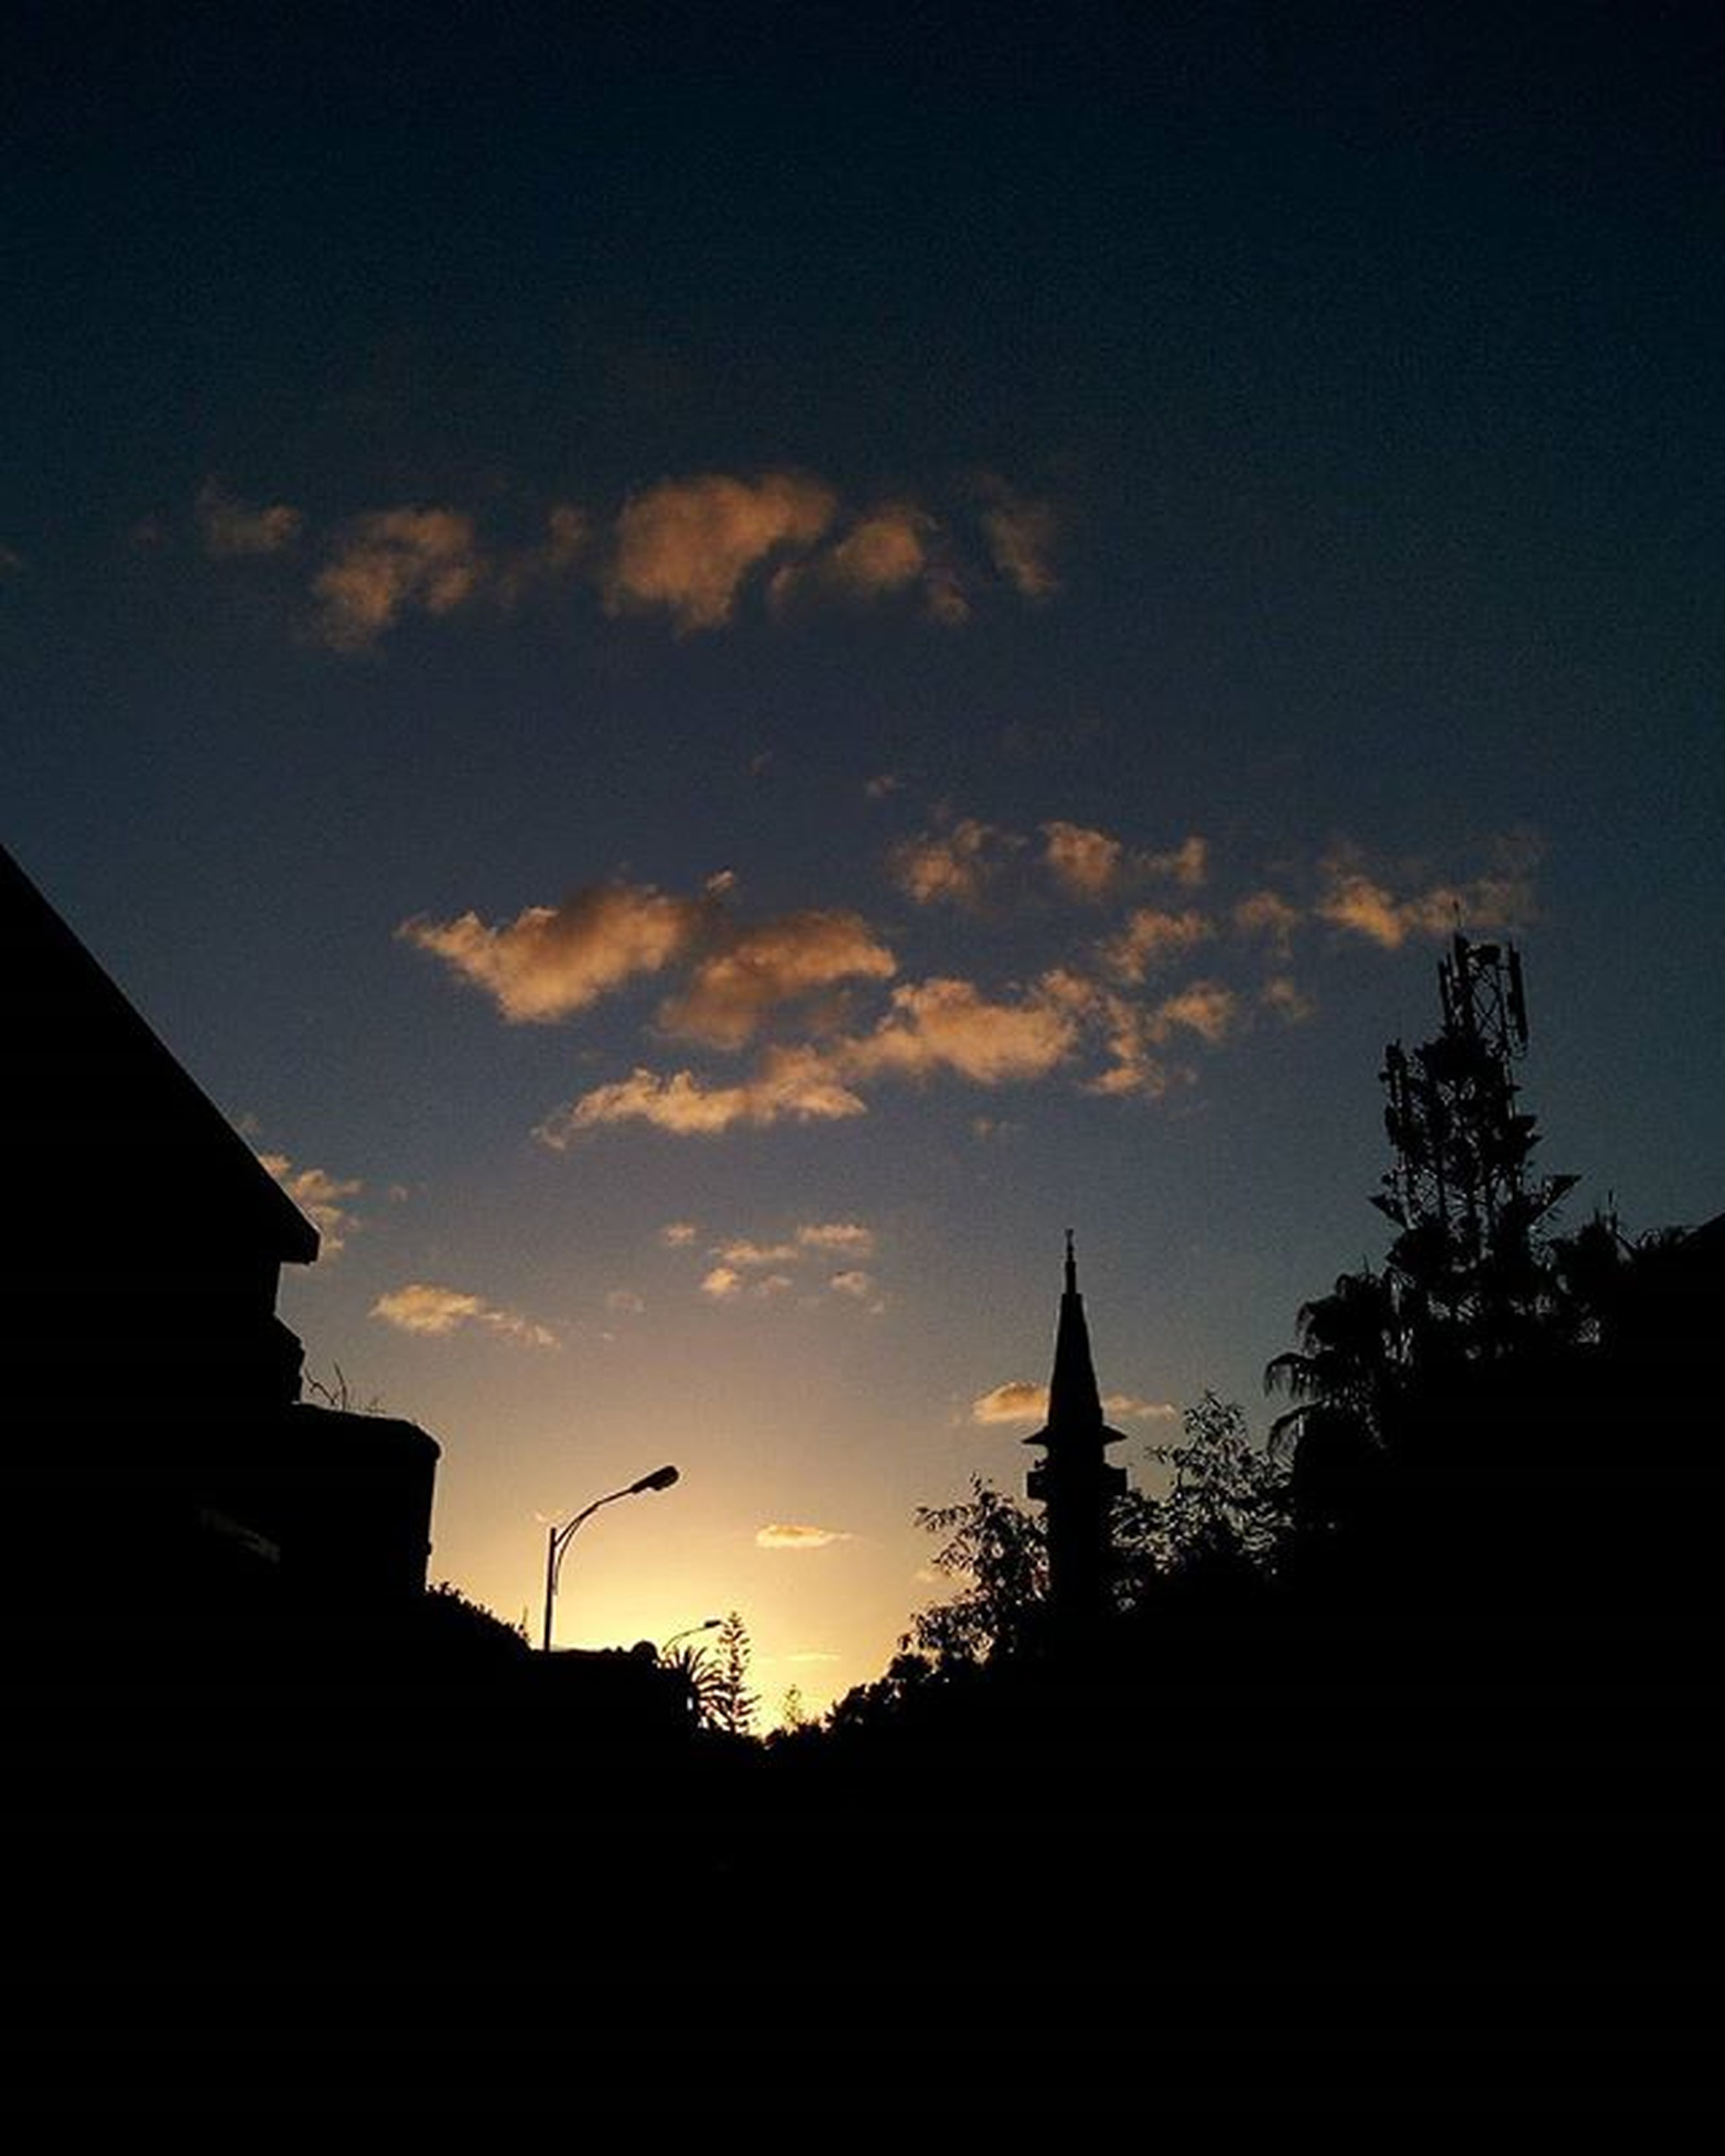 building exterior, silhouette, architecture, built structure, sunset, sky, low angle view, house, building, cloud - sky, tree, dusk, city, residential structure, cloud, residential building, outdoors, no people, nature, outline